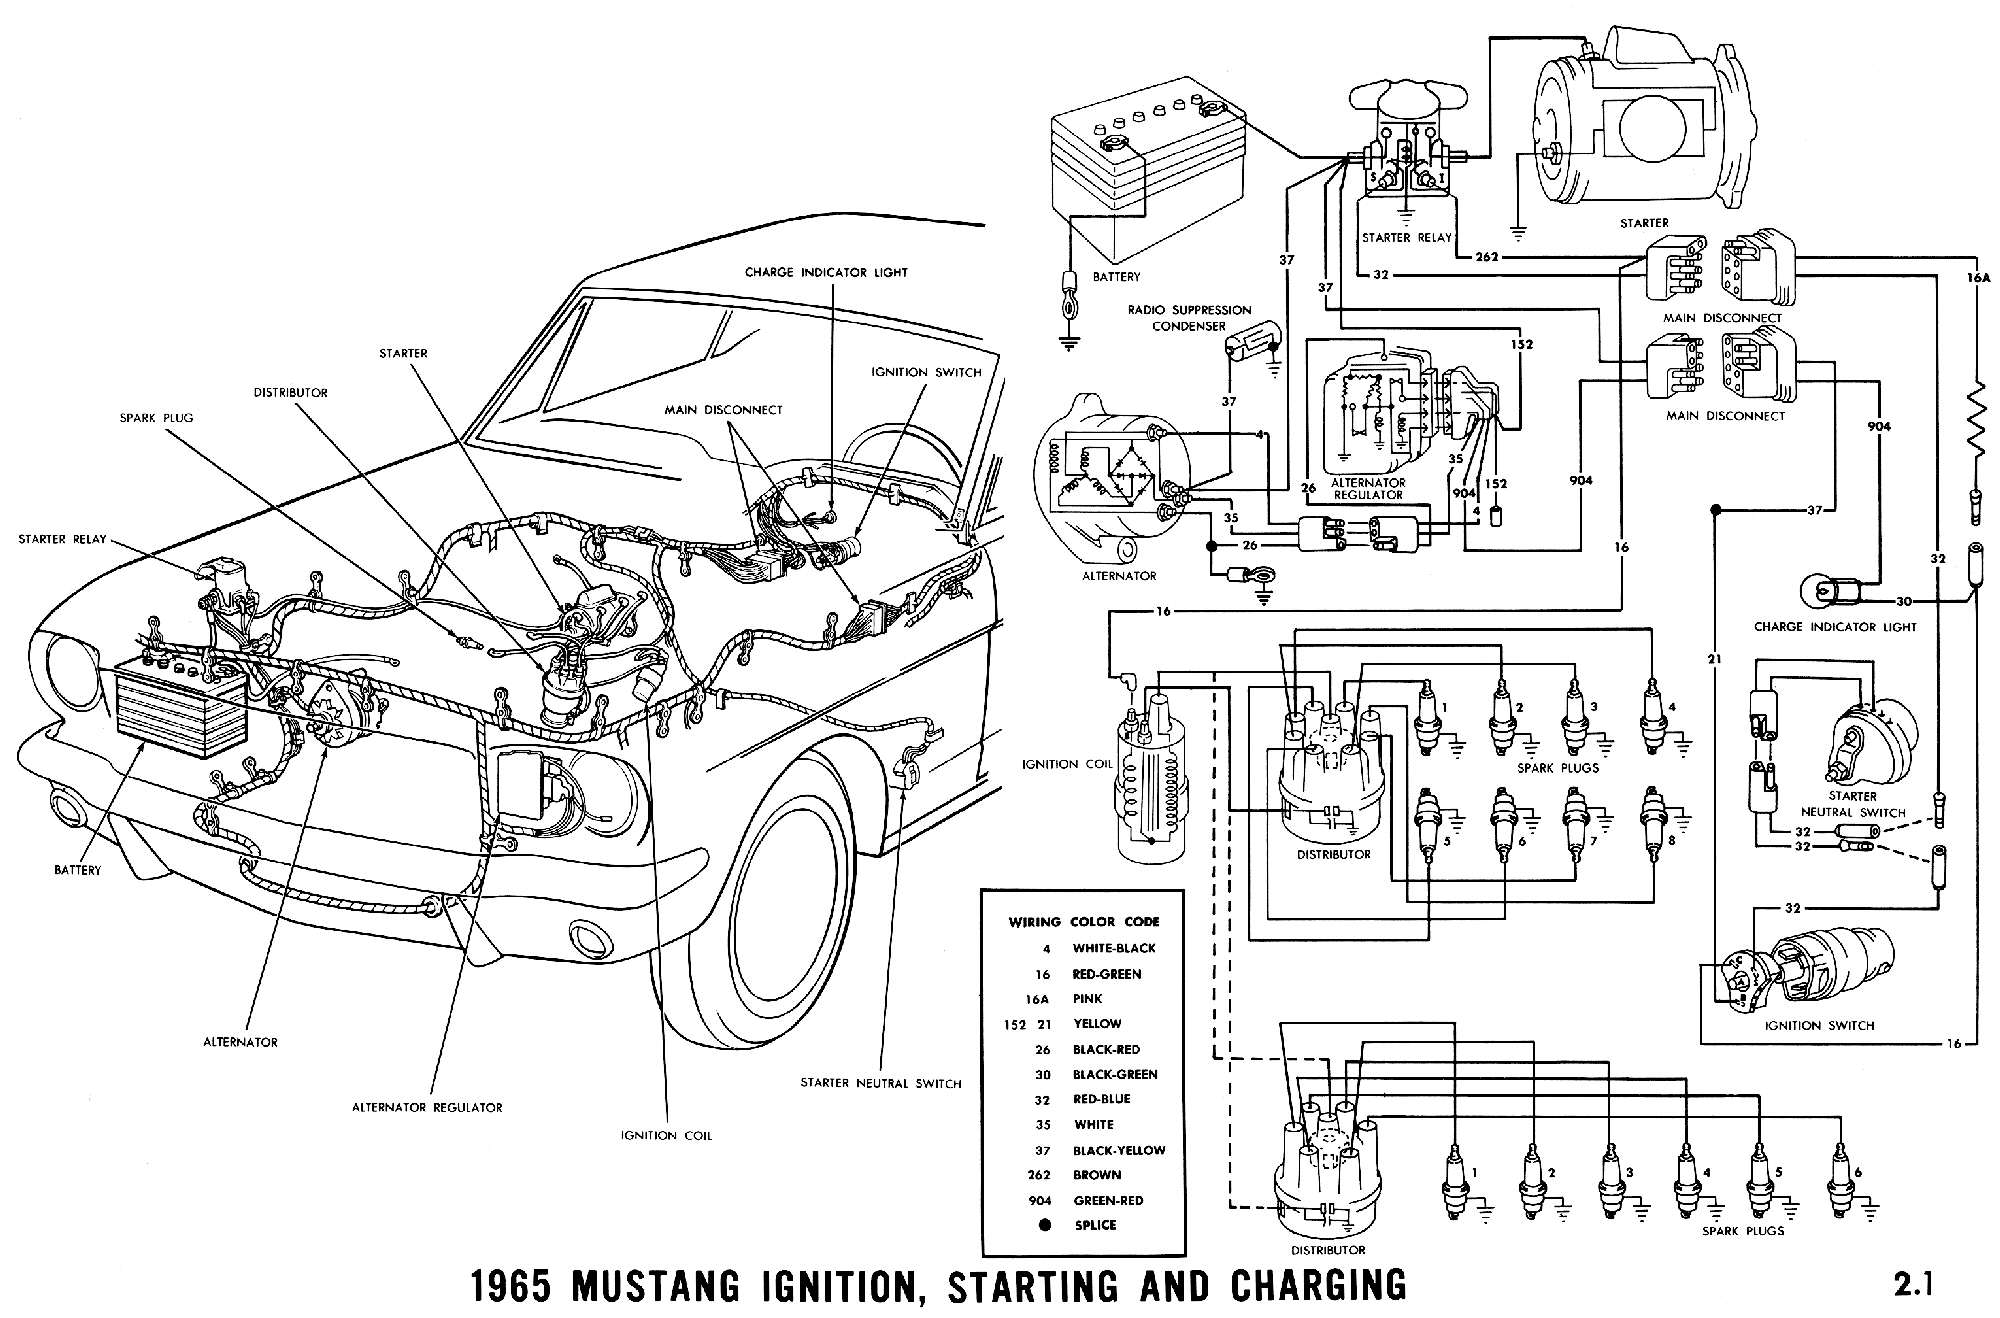 1965c 1965 mustang wiring diagrams average joe restoration 1967 Mustang Wiring Schematic at crackthecode.co